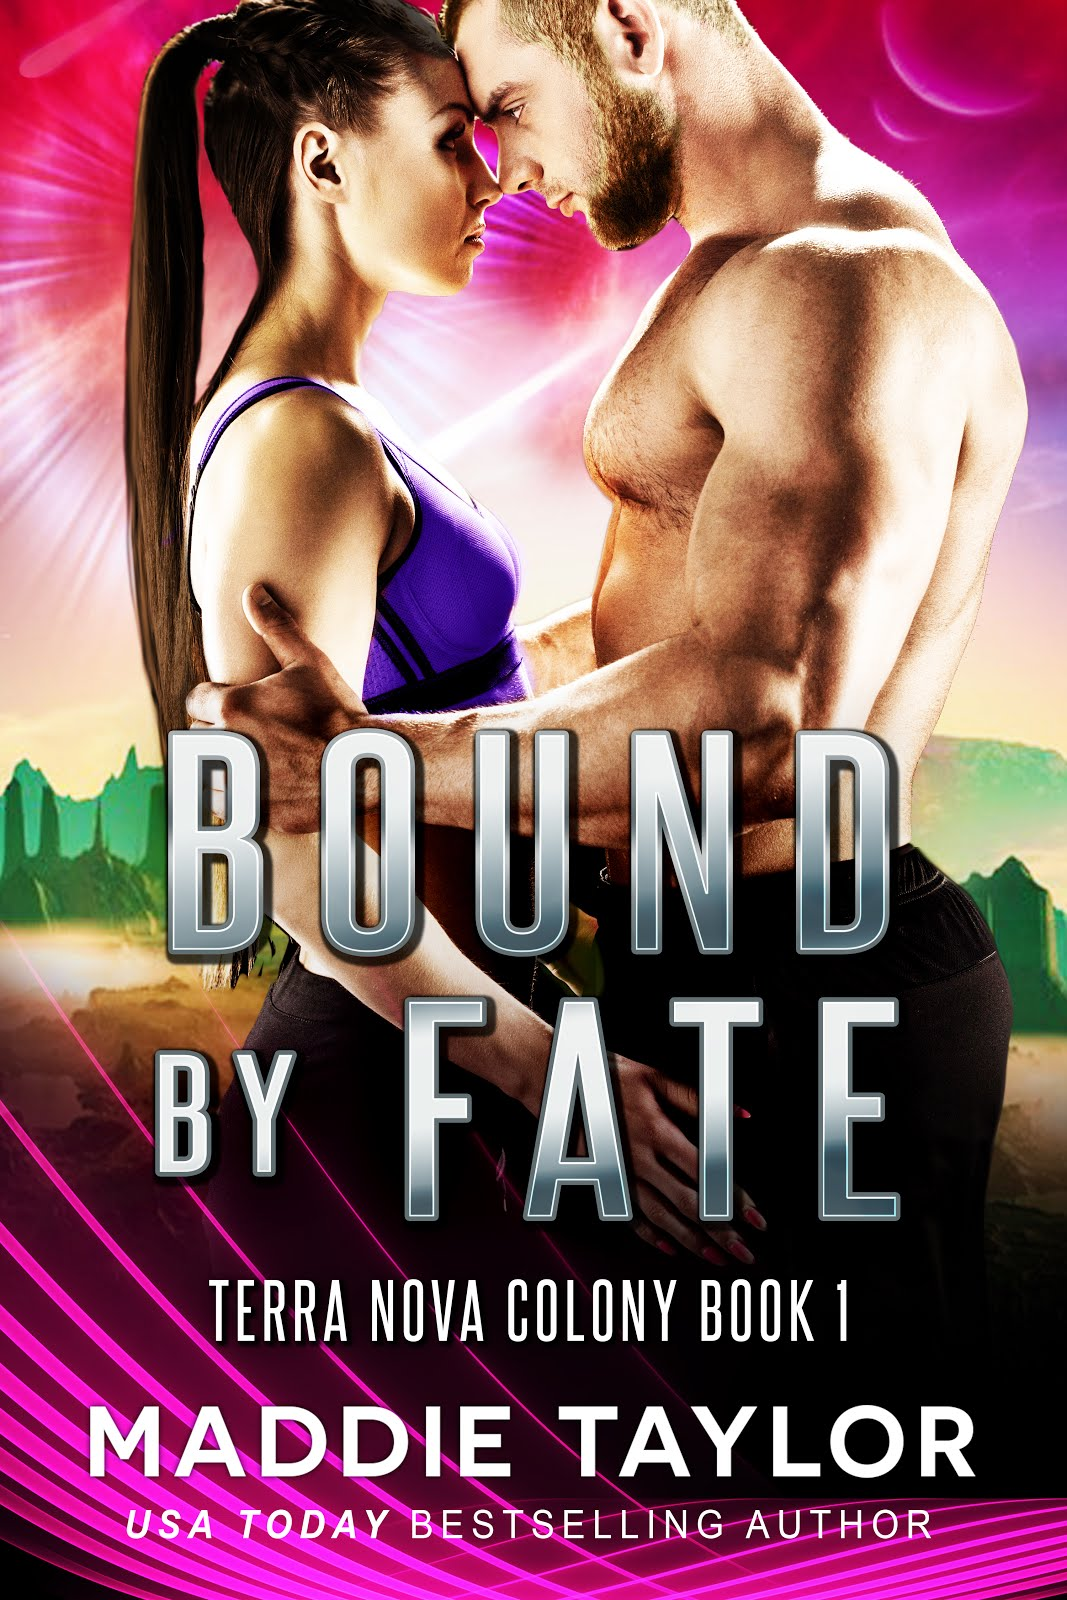 NEW!  Bound By Fate, Terra Nova Colony Book 1